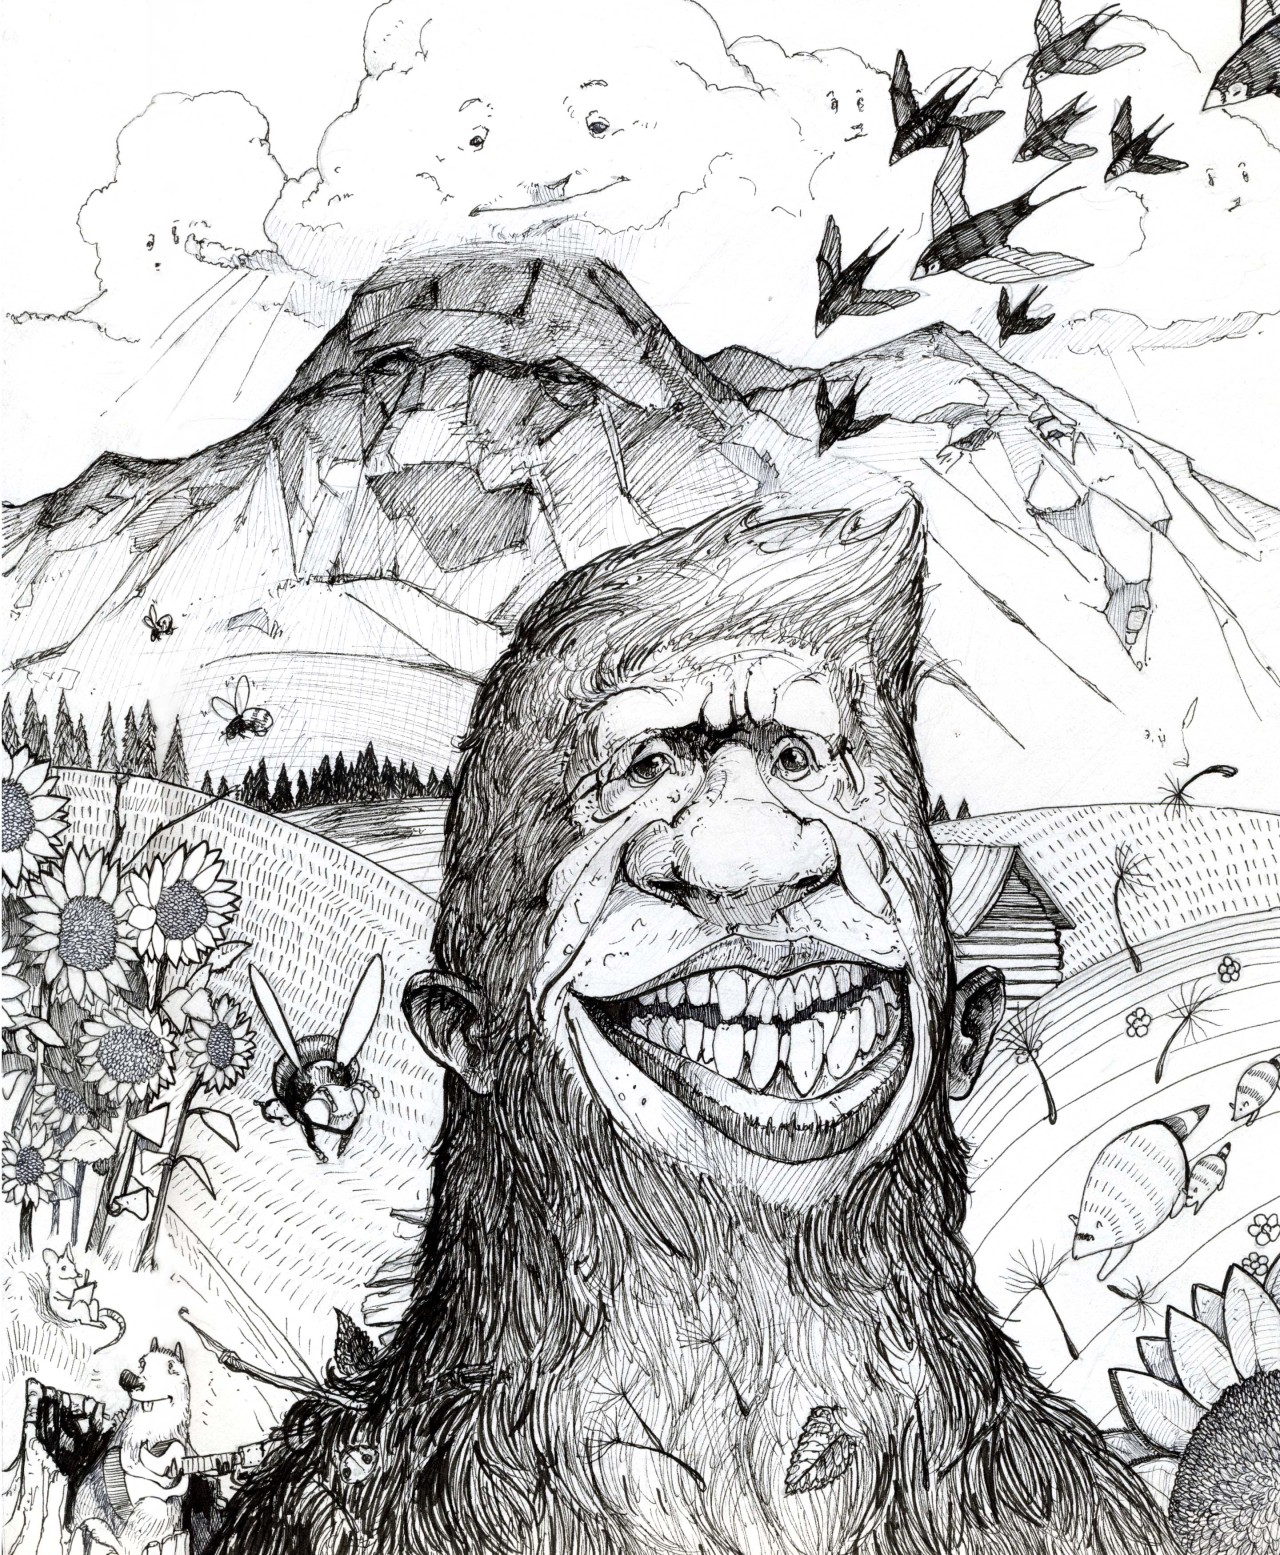 The Wonderful World of Sasquatch! by William Michael Burns www.williamburnsillustration.com